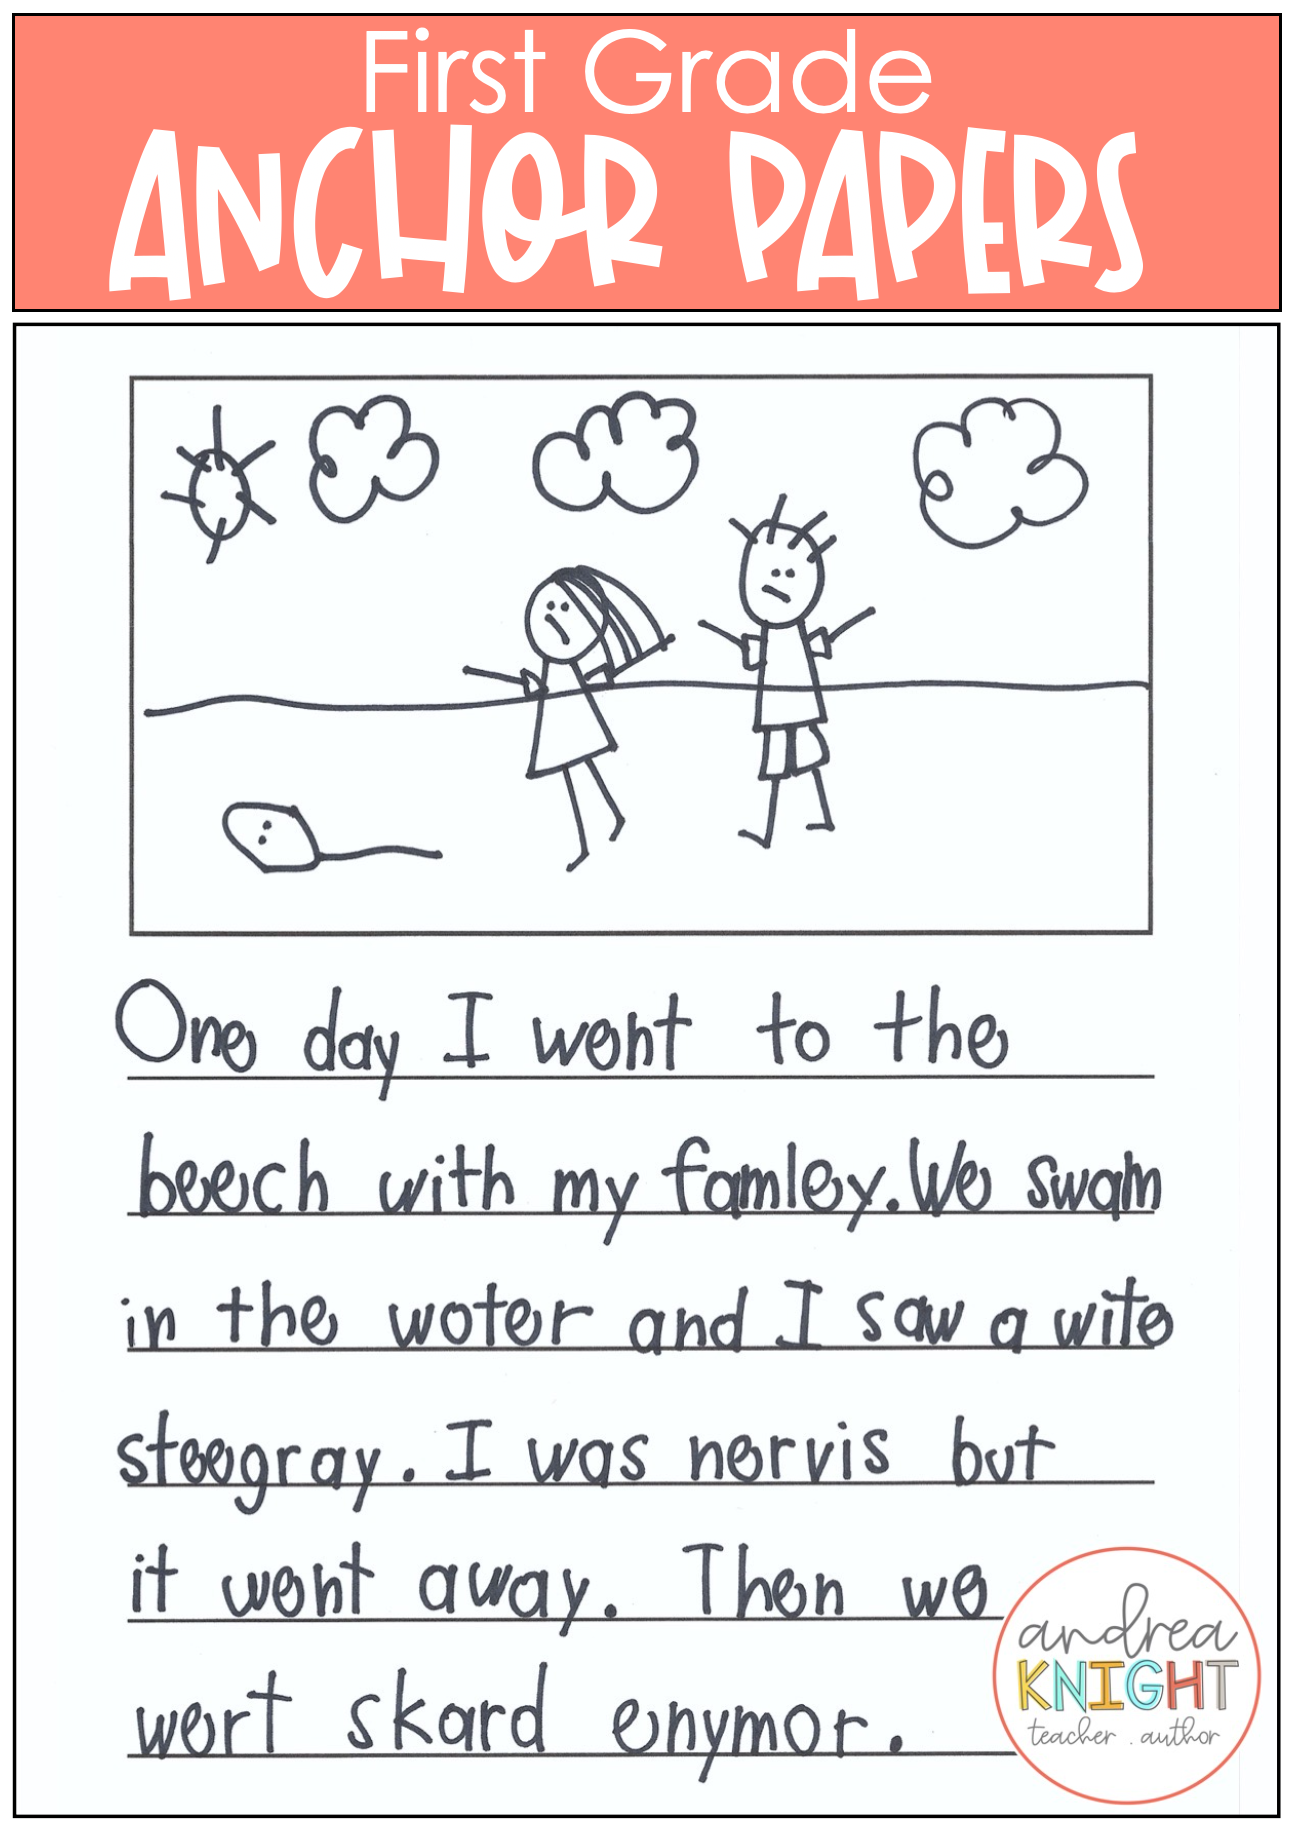 Writing Anchor Papers 1st Grade In